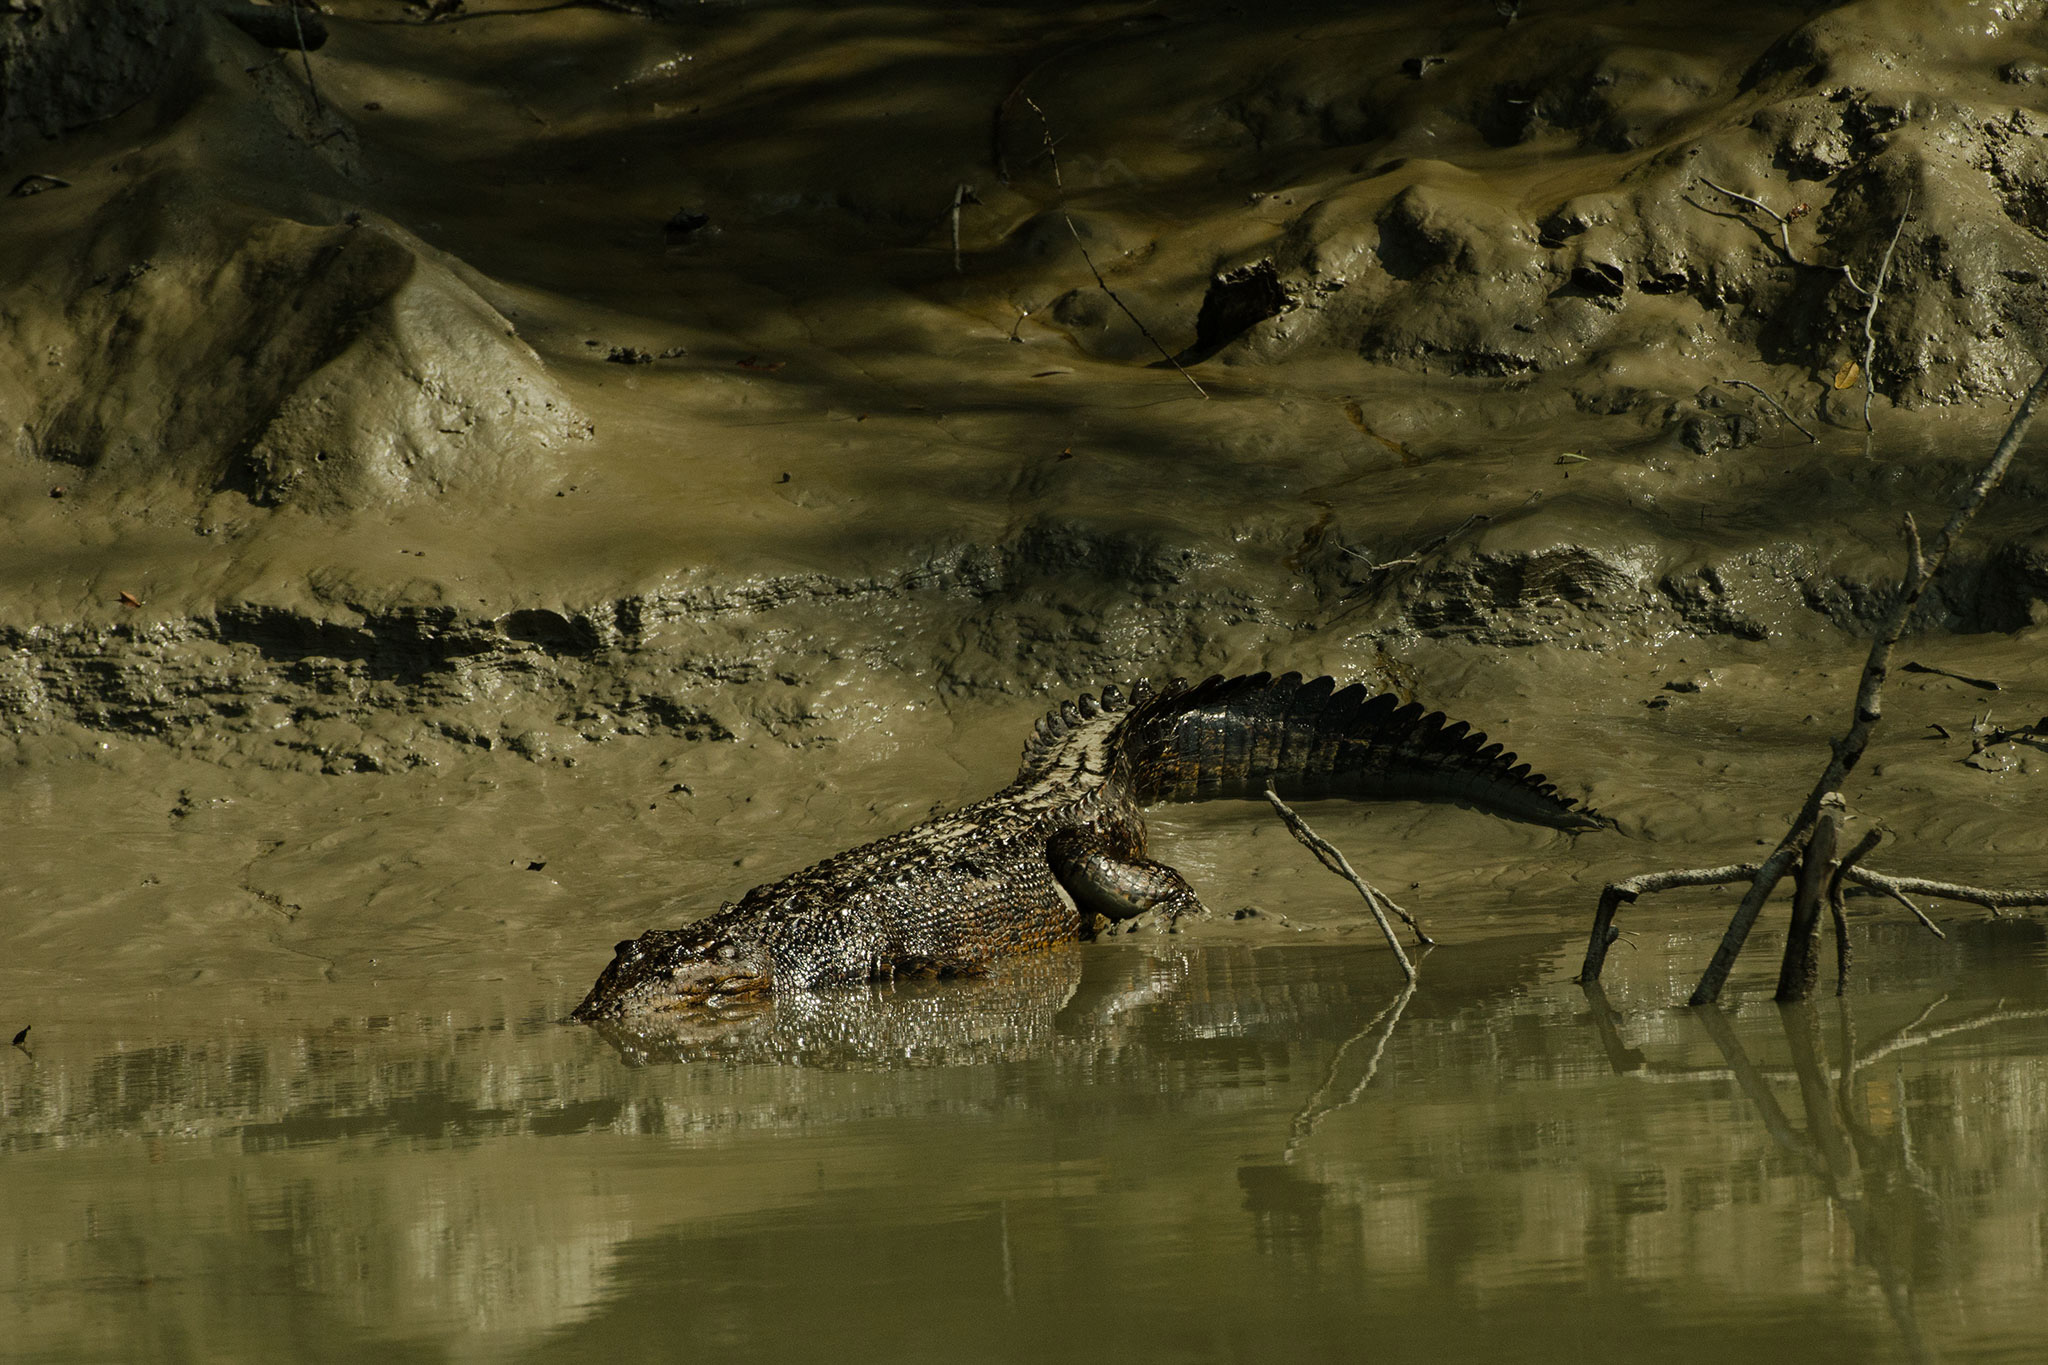 Oil-coated saltwater crocodile, Bangladesh